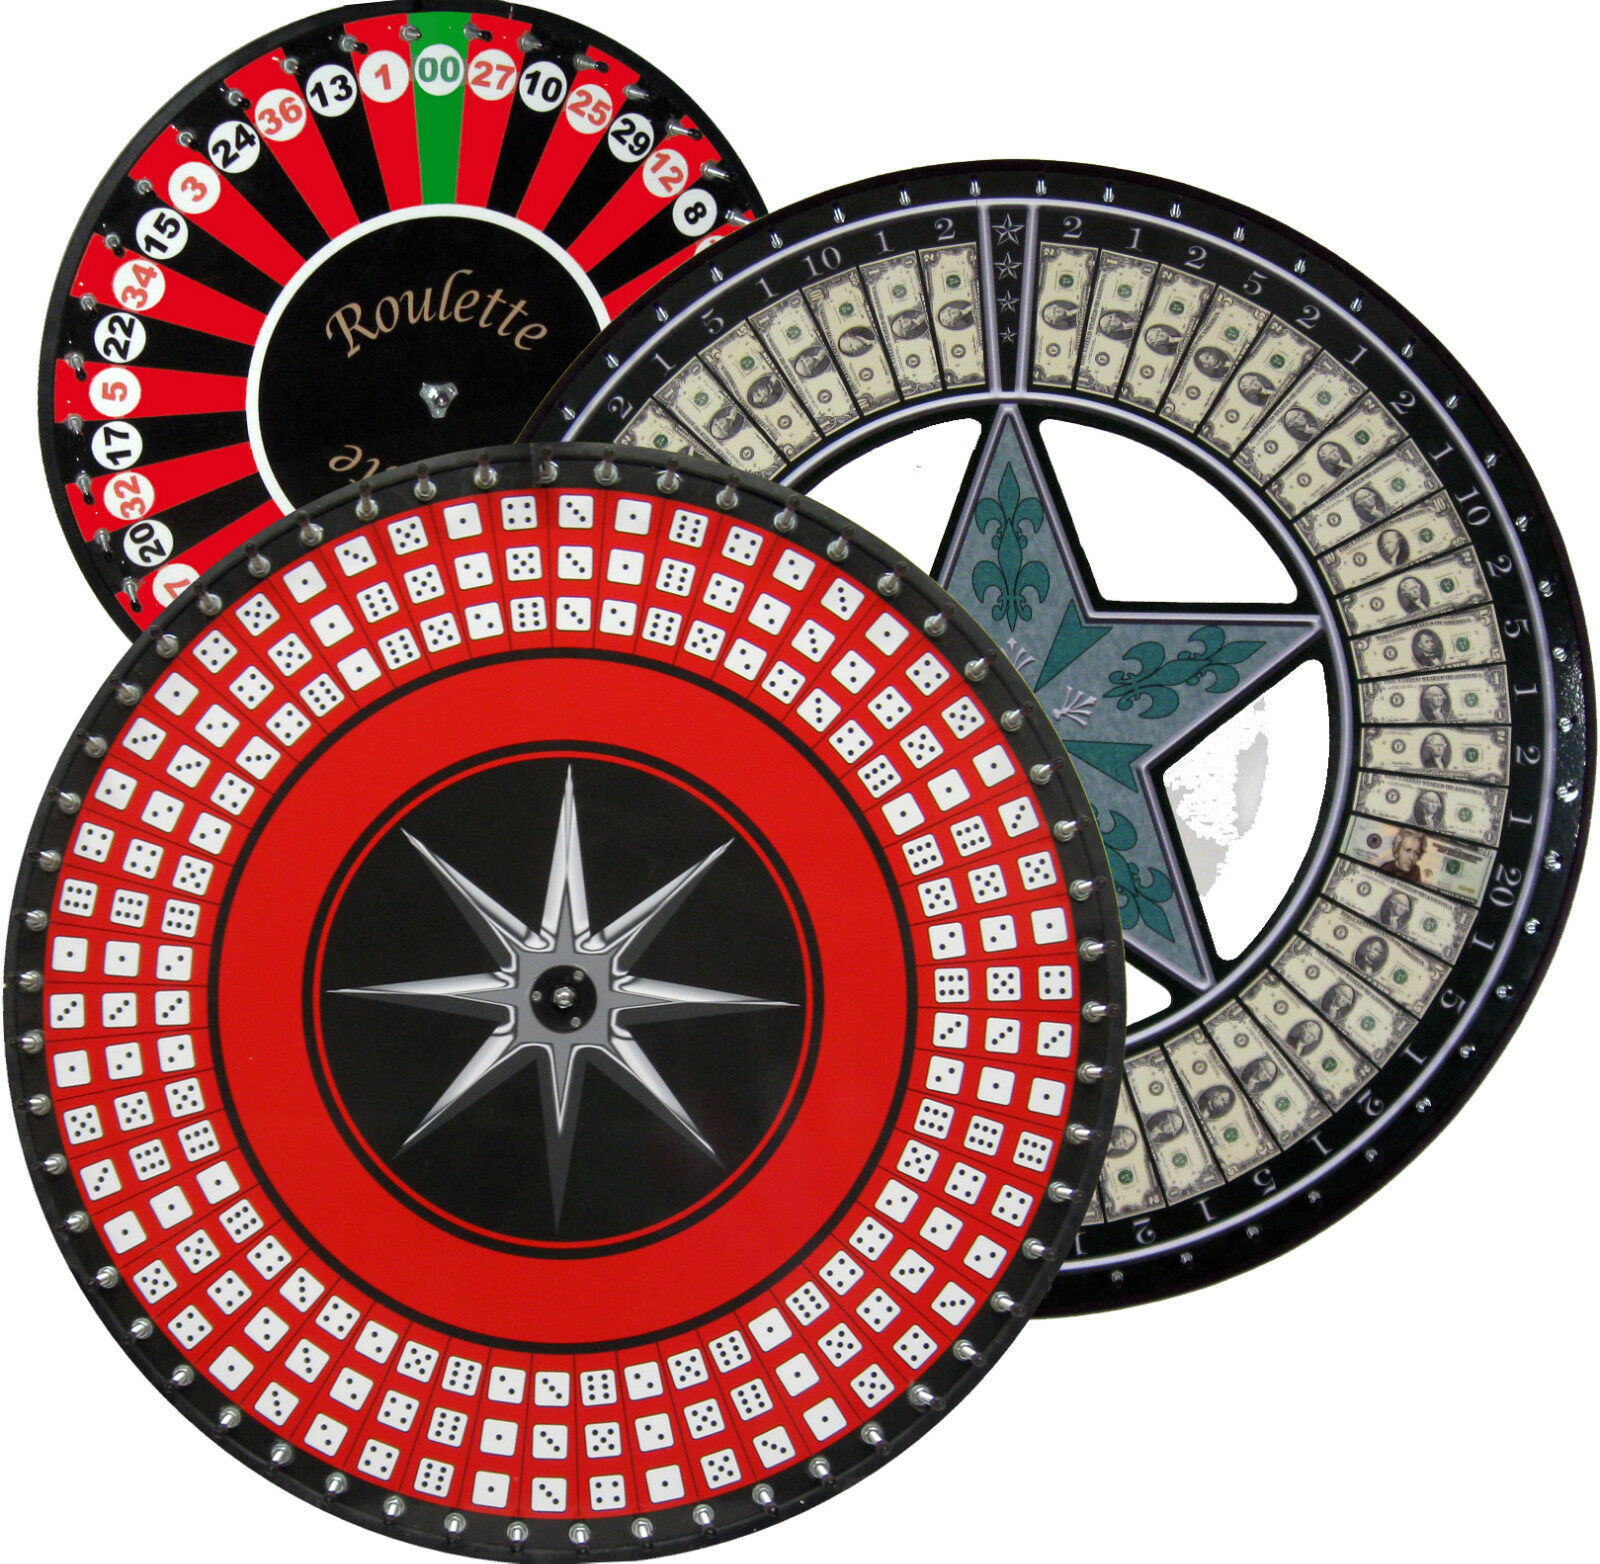 36 DICE WHEEL, GAME WHEEL, PRIZE PRIZE PRIZE WHEEL  TALL